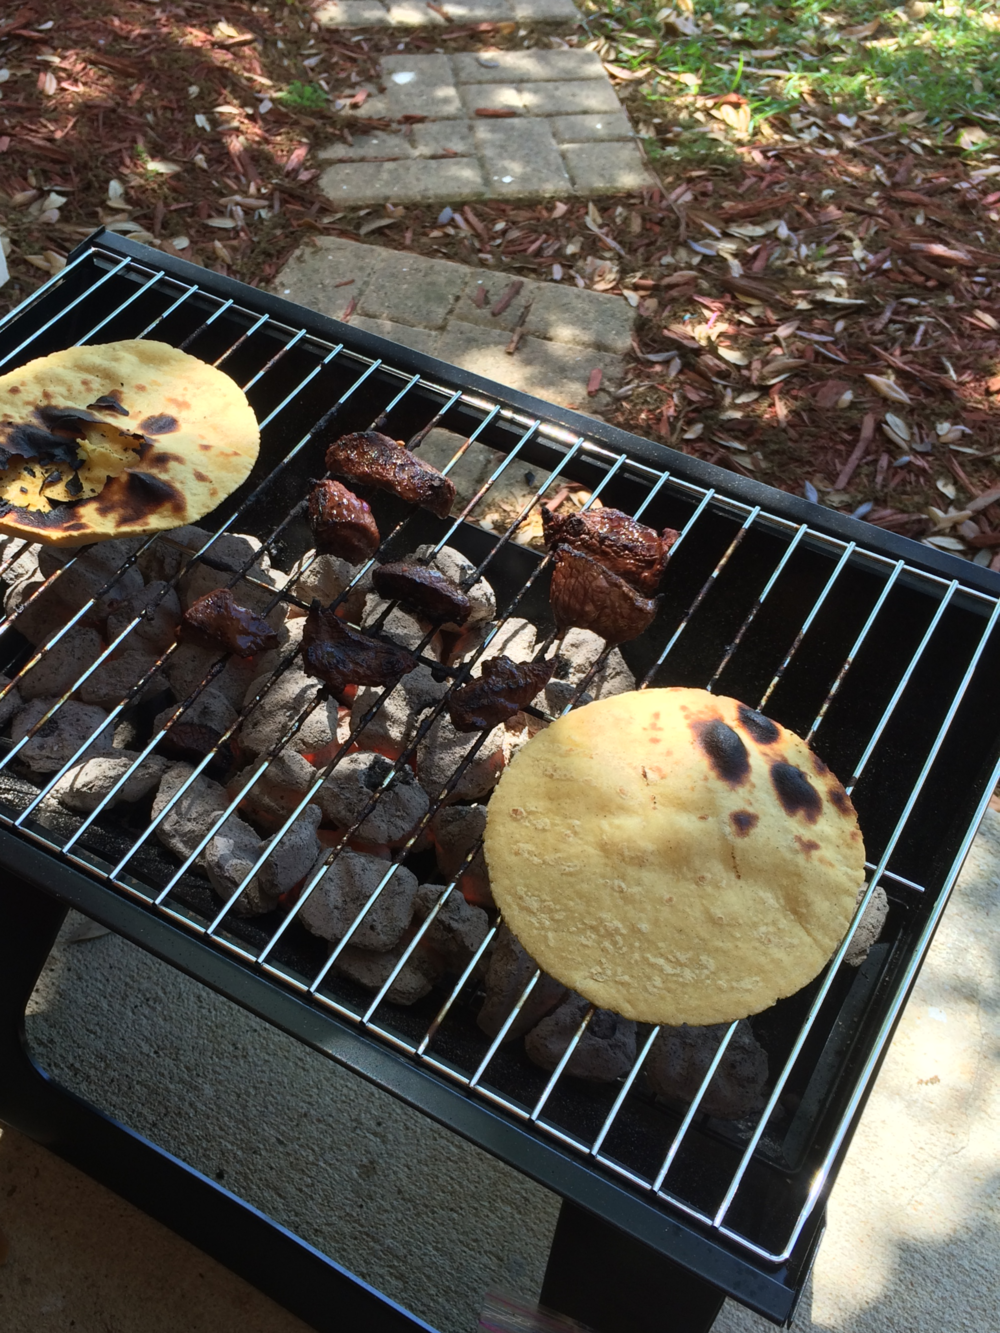 This little beach-side charcoal grill came in handy for grilling on our apartment patio!